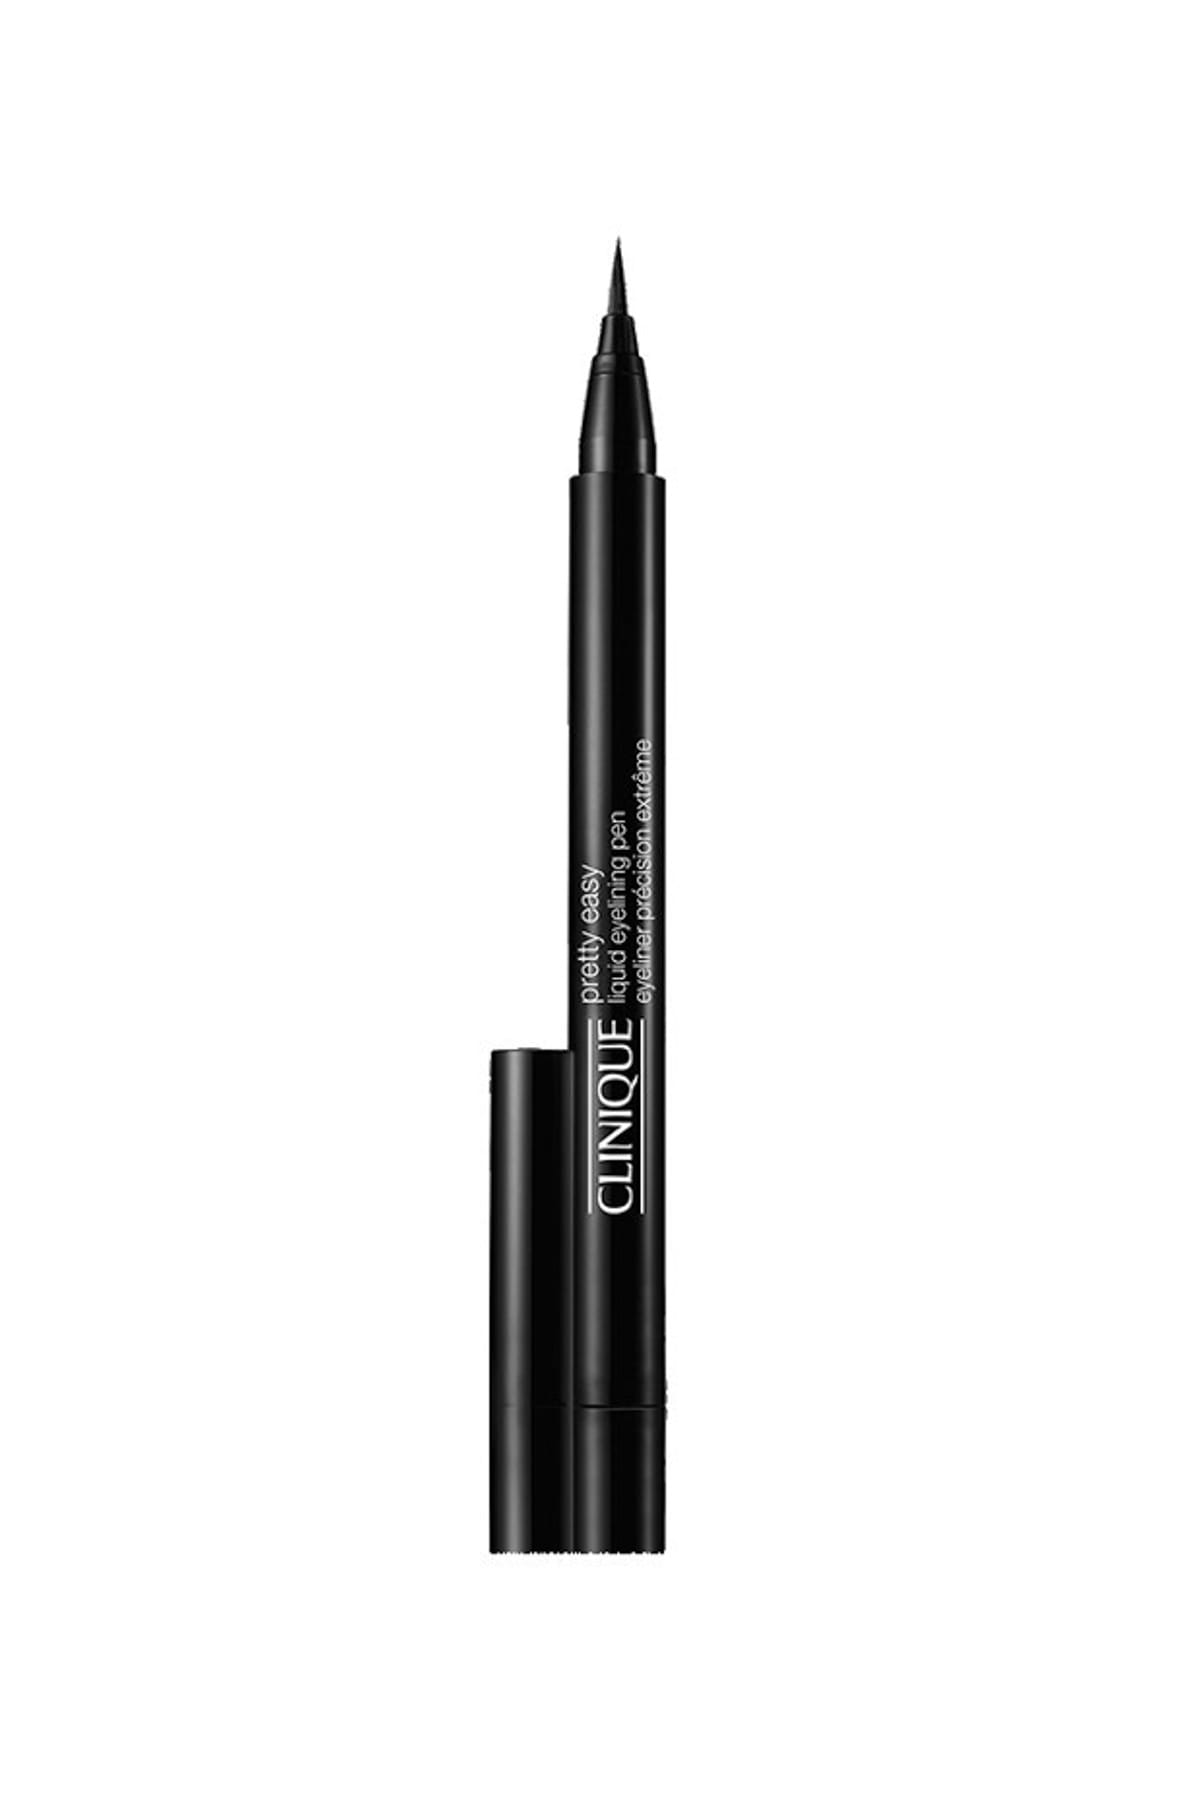 Clinique Likit Siyah Eyeliner - Pretty Easy Black 0.34 ml 020714896317 2